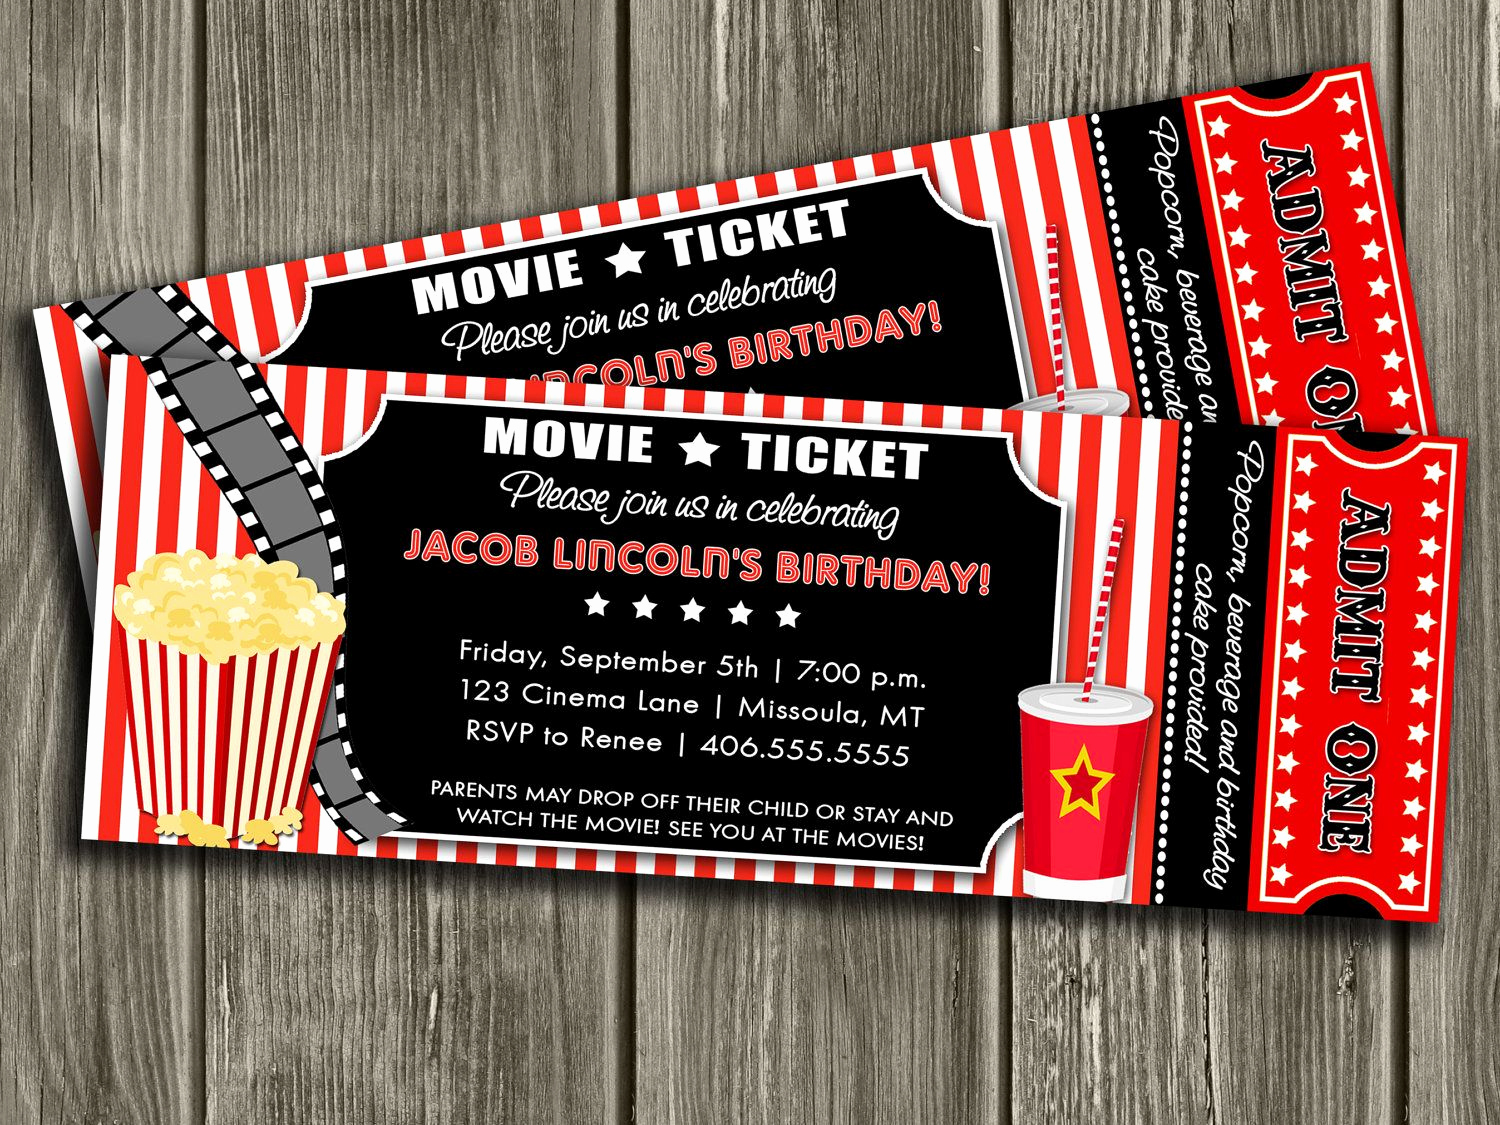 Movie Ticket Invitation Template Awesome Movie Ticket Invitation Free Thank You Card Included